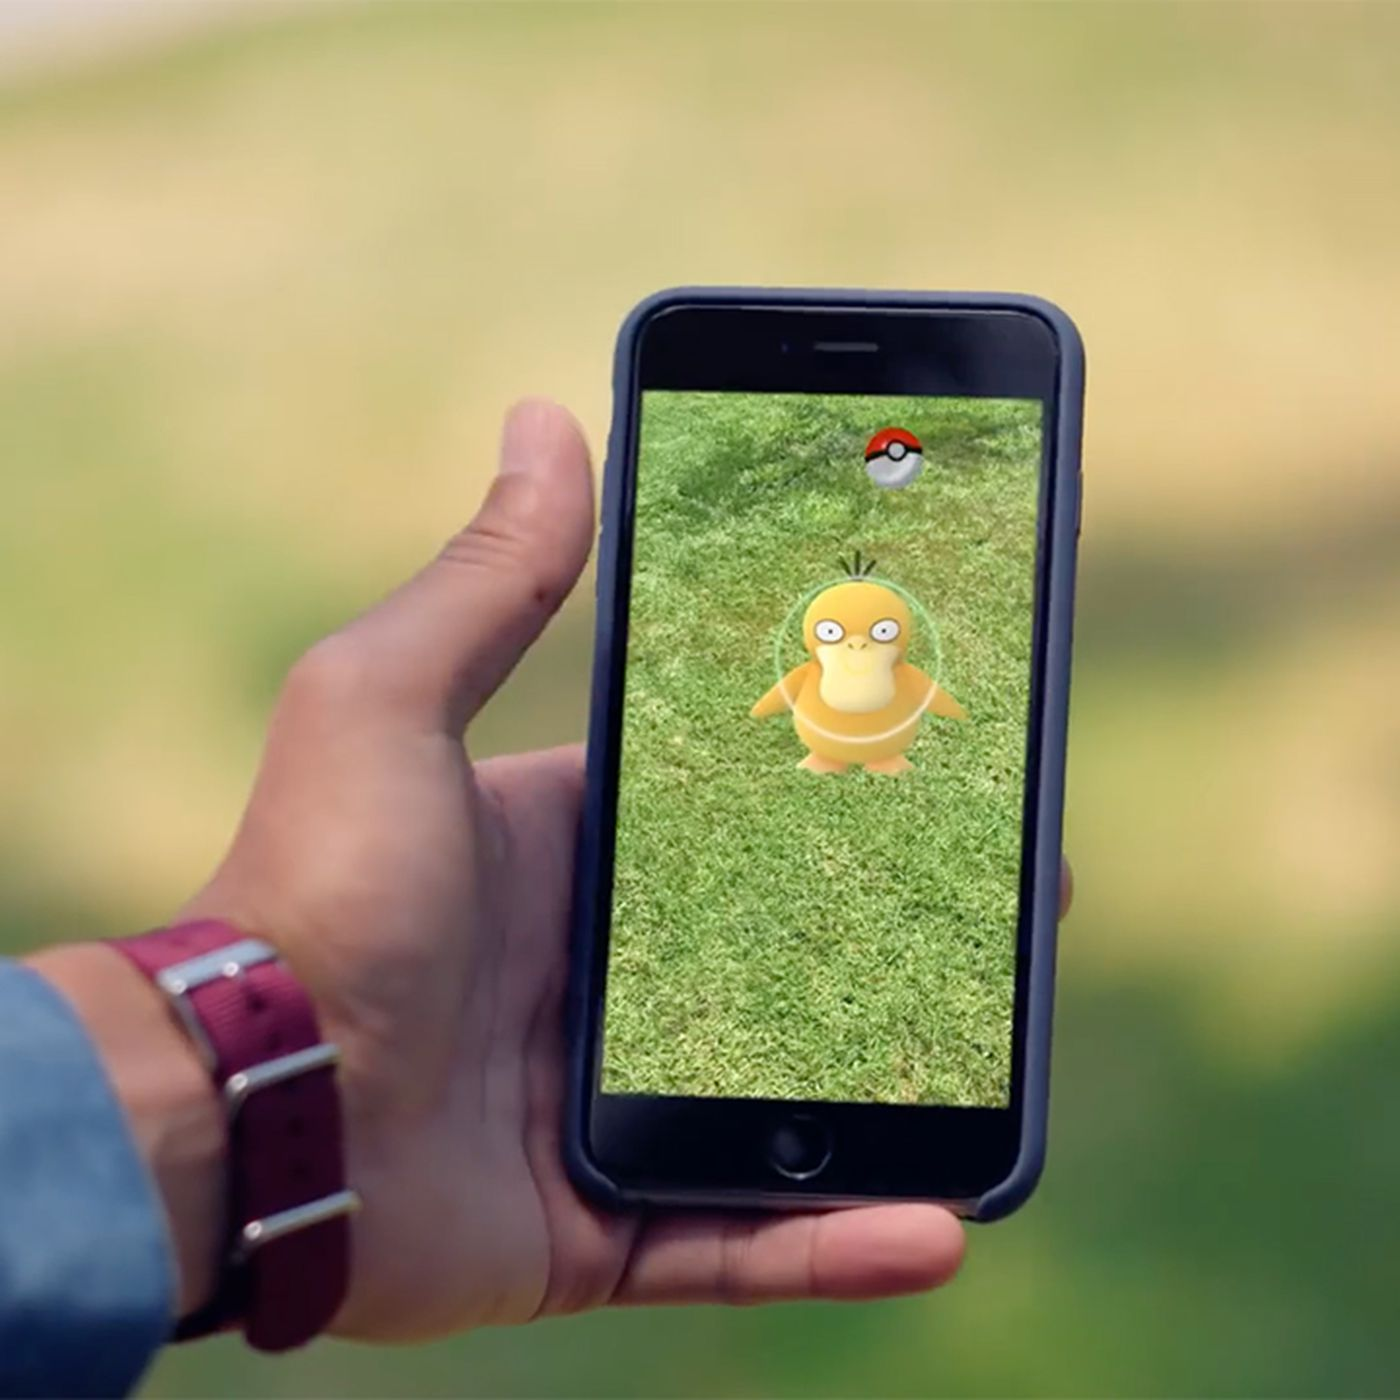 Spurned Pokemon Go players file complaints with federal